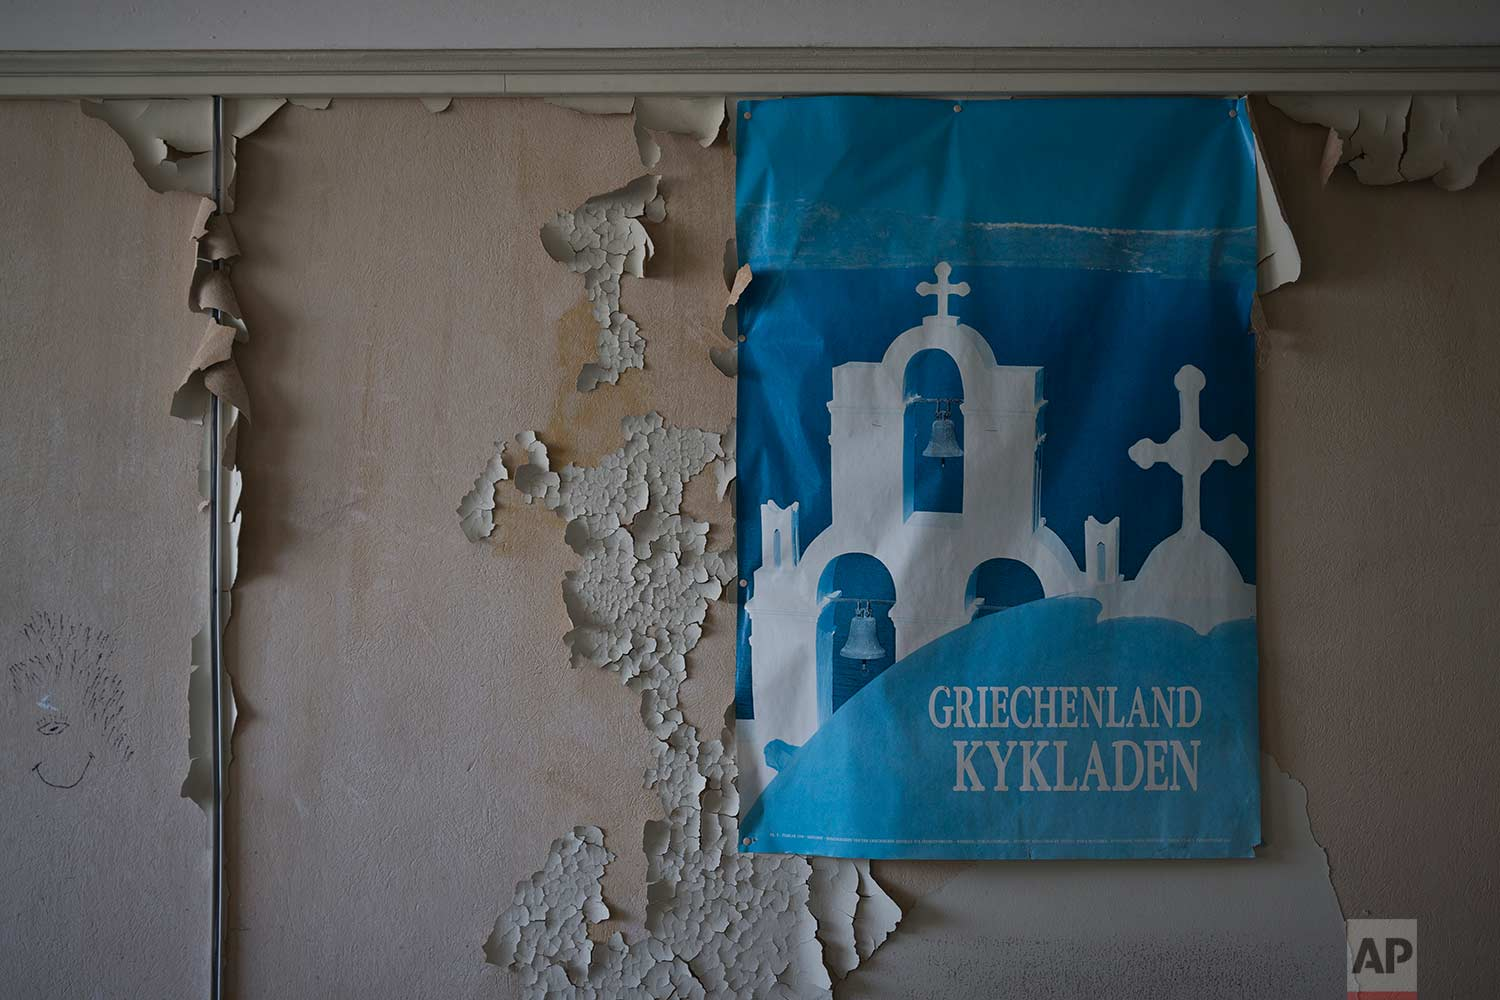 A Greek tourism board poster is displayed on a peeling wall in a 2,600-square meter listed building from 1955, formerly used by a commerce fund company. (AP Photo/Petros Giannakouris)